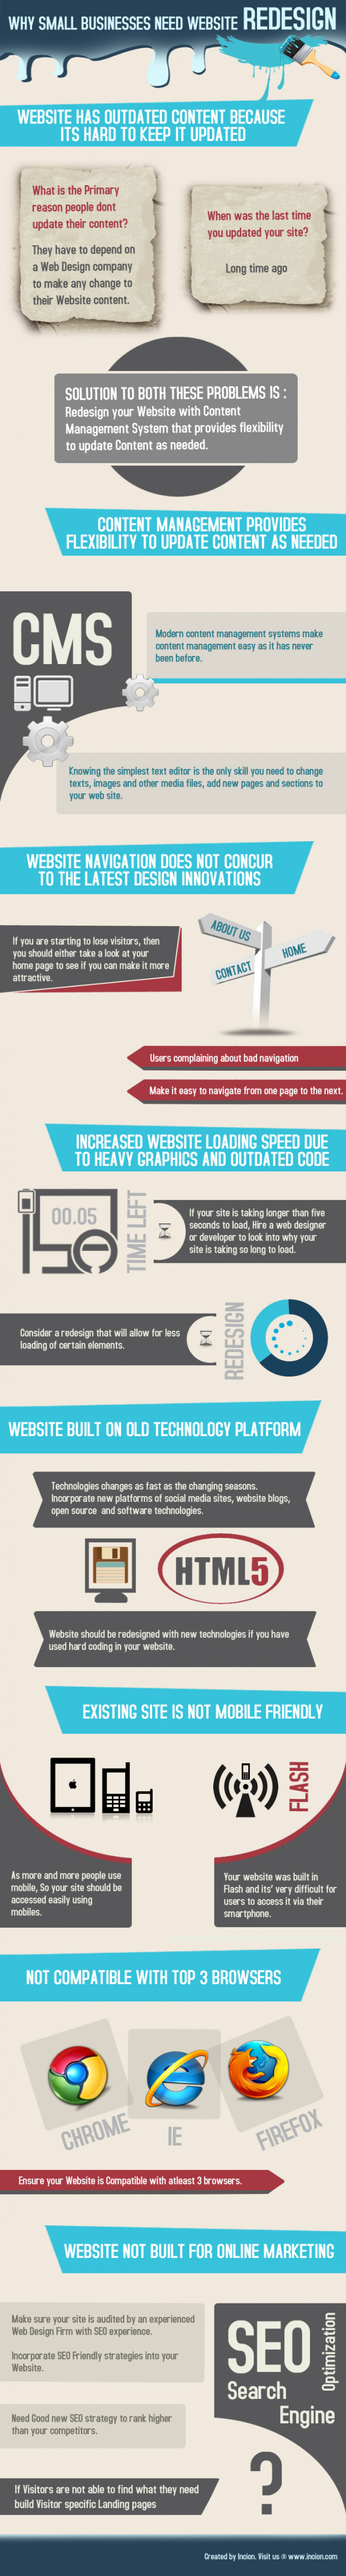 Website Redesign for Small Business  Infographic